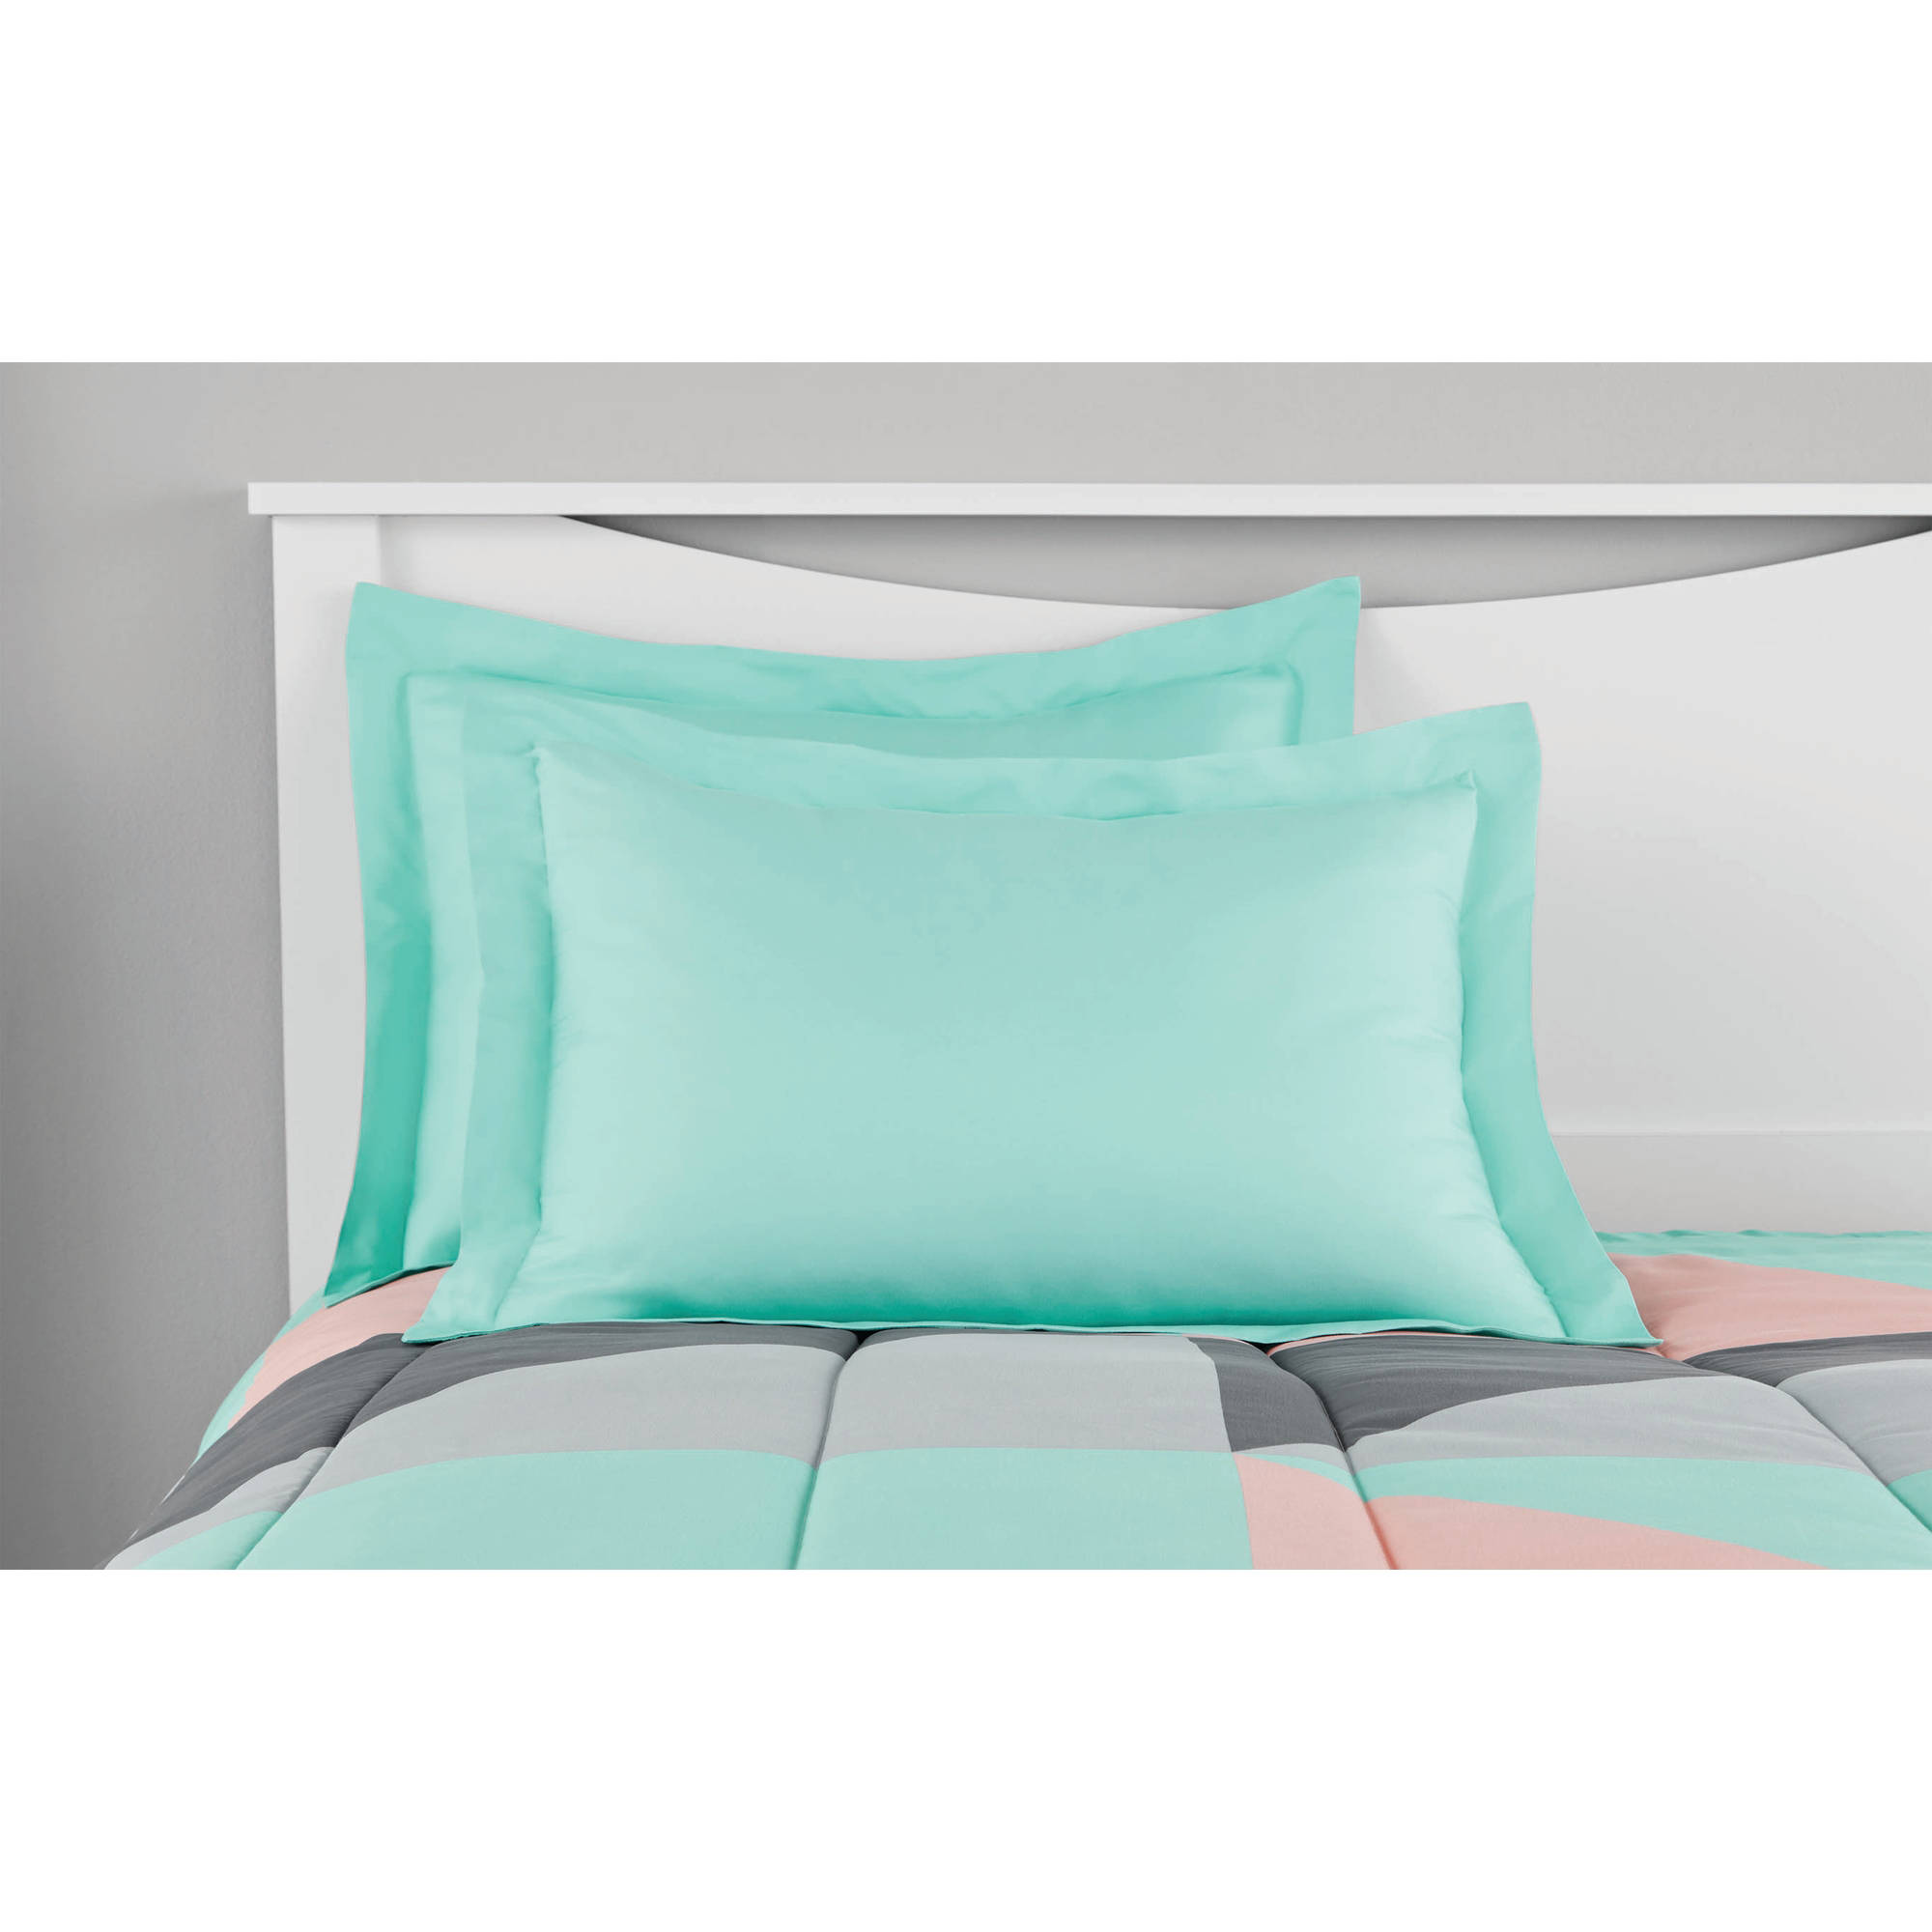 sicily j set teal p bed damask comforter york puffed queen dillards zi new bedding